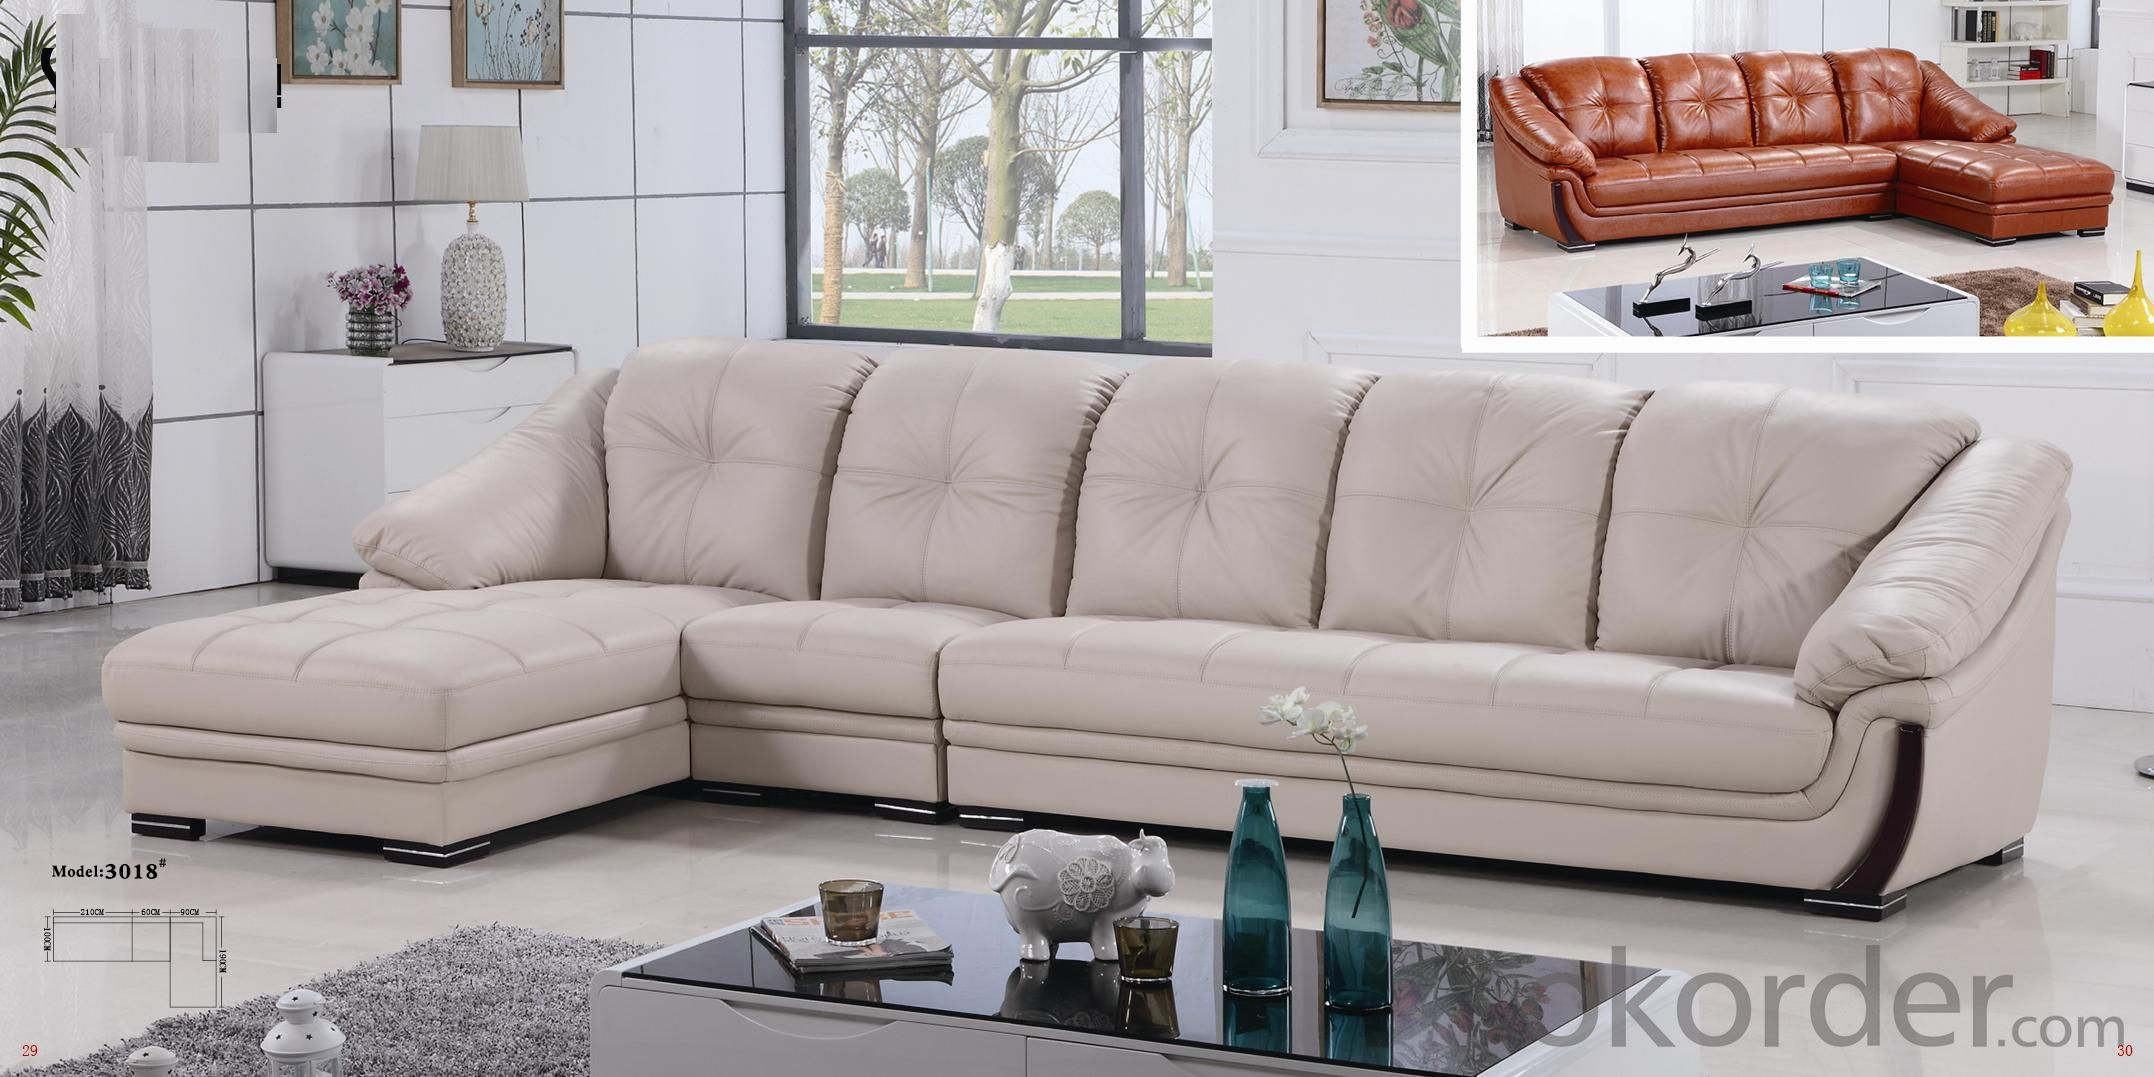 CNBM US popular leather sofa set CMAX-06